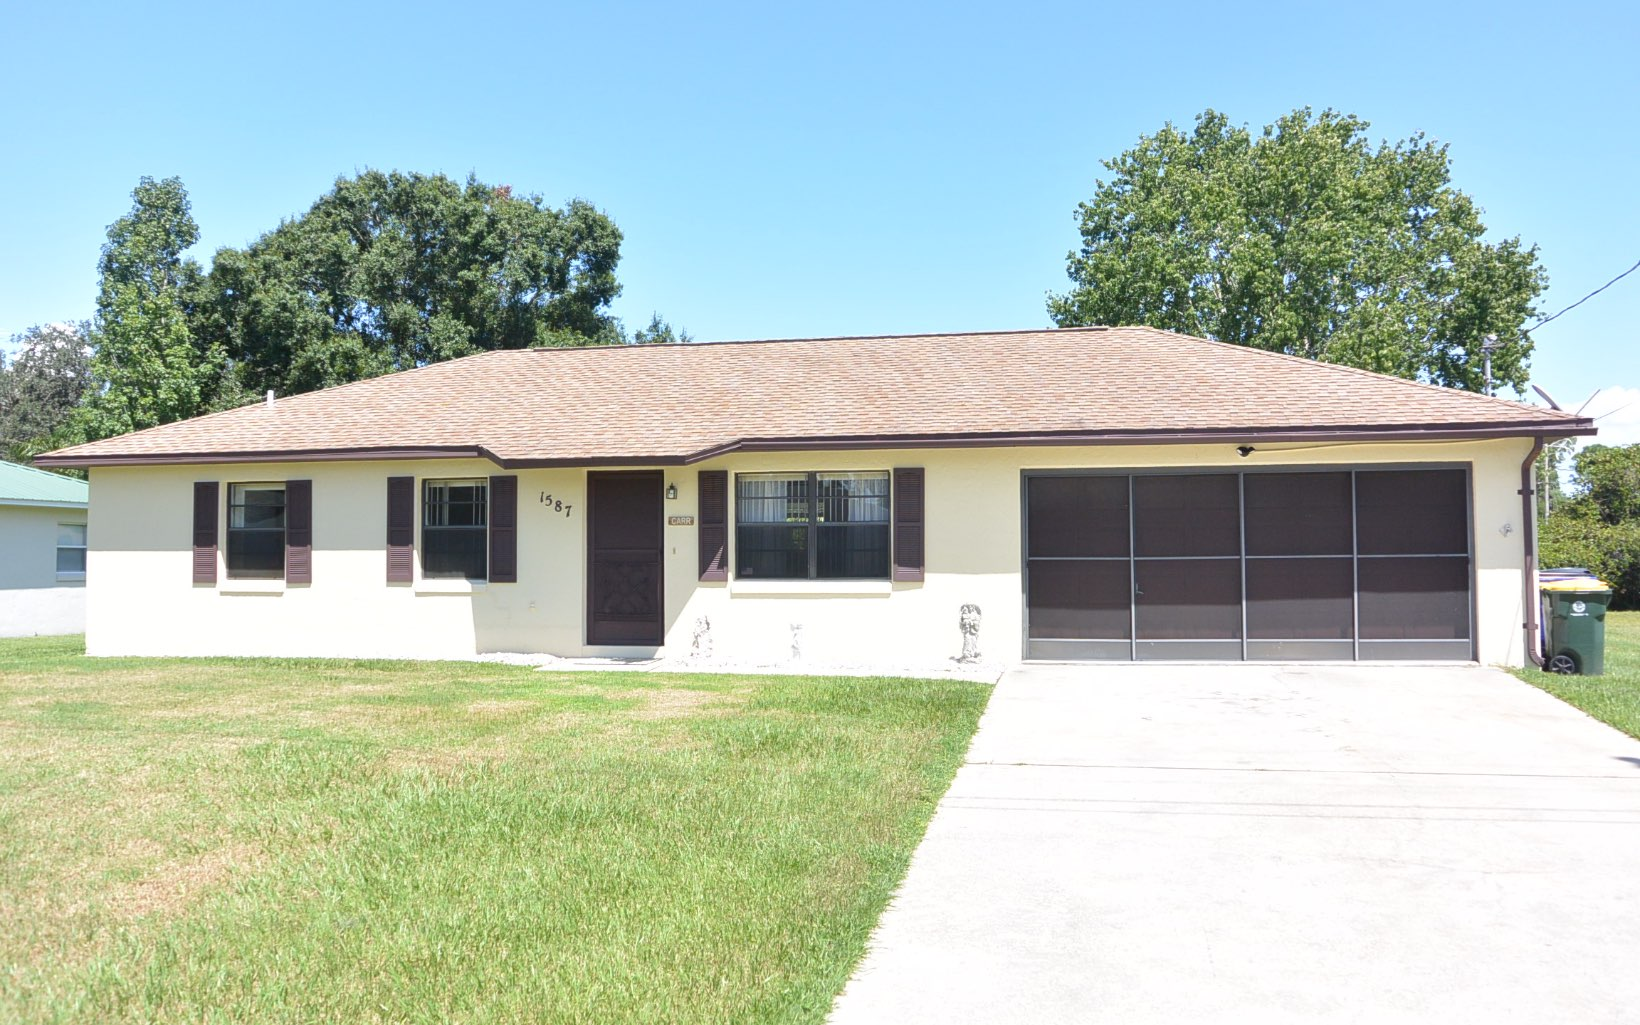 1587 Buck St, Lake Placid, FL 33852